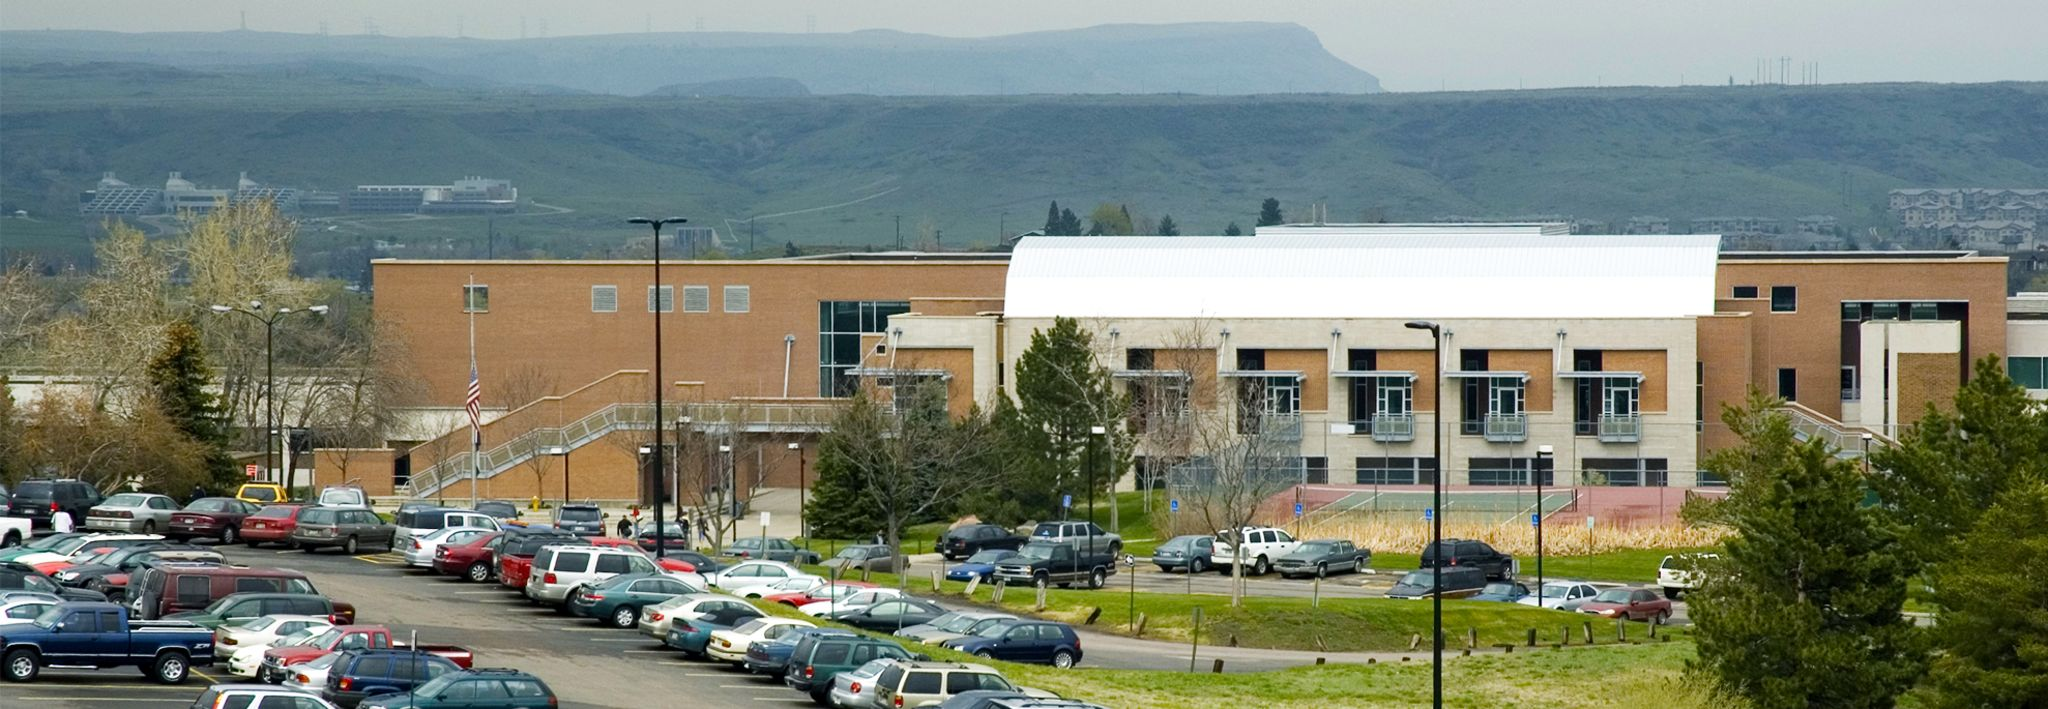 Picture of Red Rocks Community College East wing.